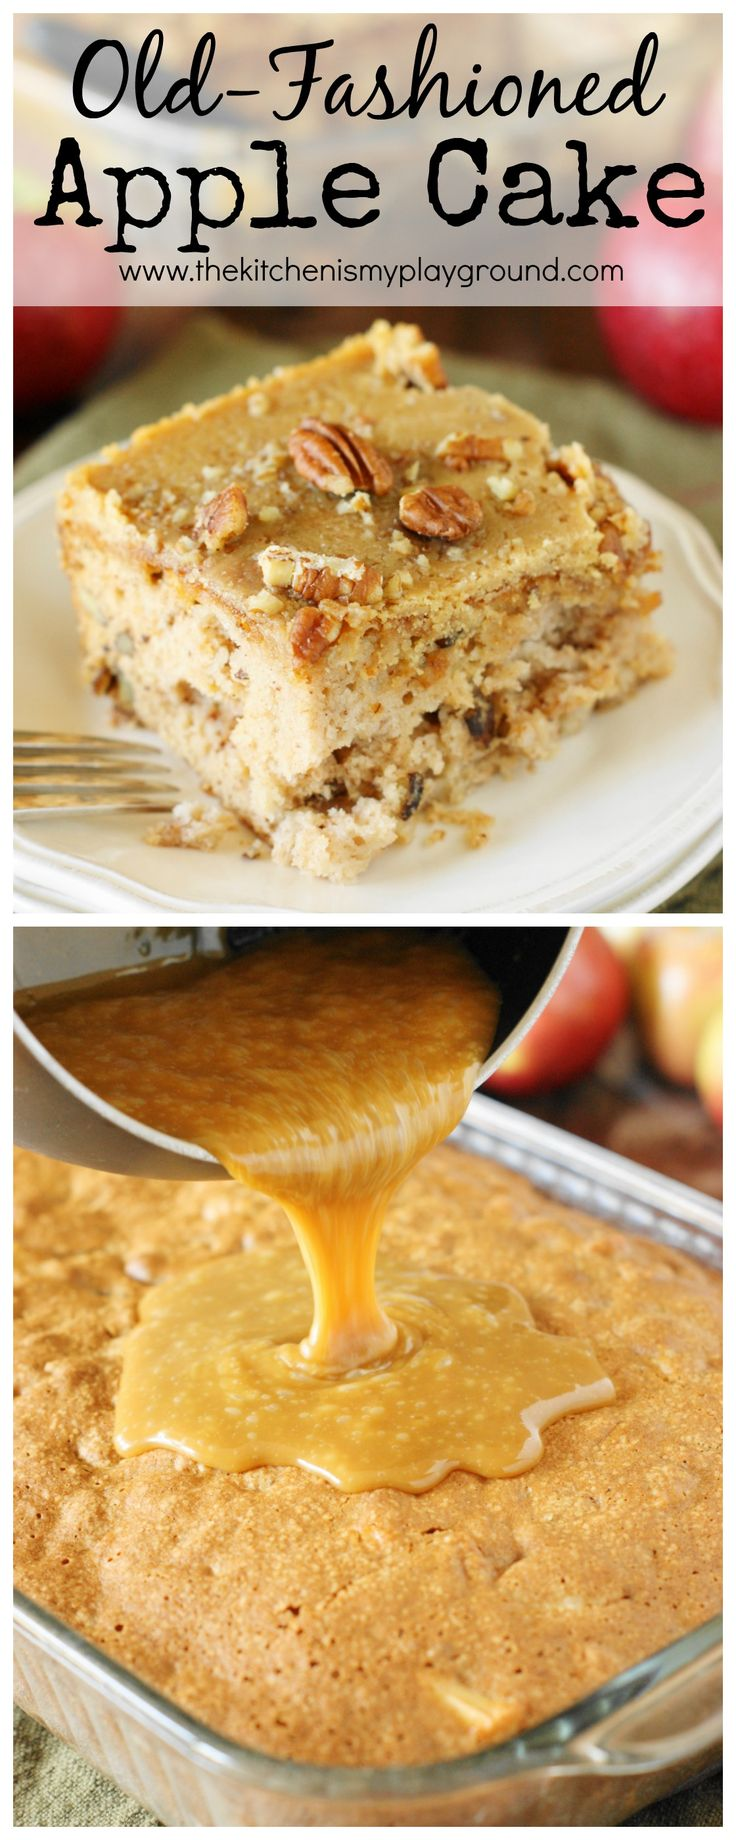 Old-Fashioned Apple Cake ~ Loaded with fresh apples, iced with boiled caramel topping, & studded with crunchy pecans, this is one stunningly delicious apple dessert.  www.thekitchenismyplayground.com